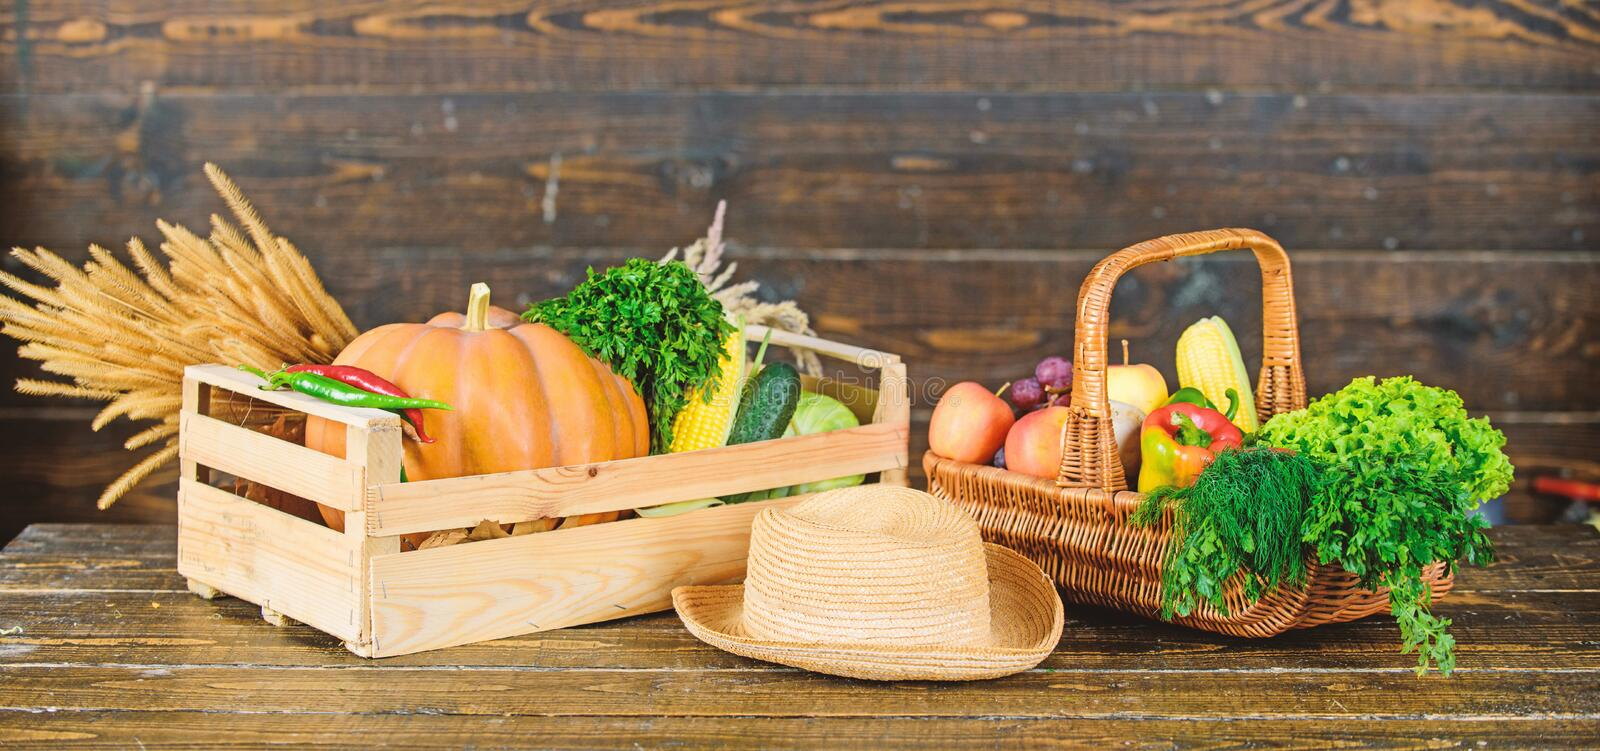 Fresh organic vegetables wicker basket. Fall harvest concept. Autumn harvest crops vegetables. Locally grown natural. Food. Farmers market. Vibrant and colorful stock photos